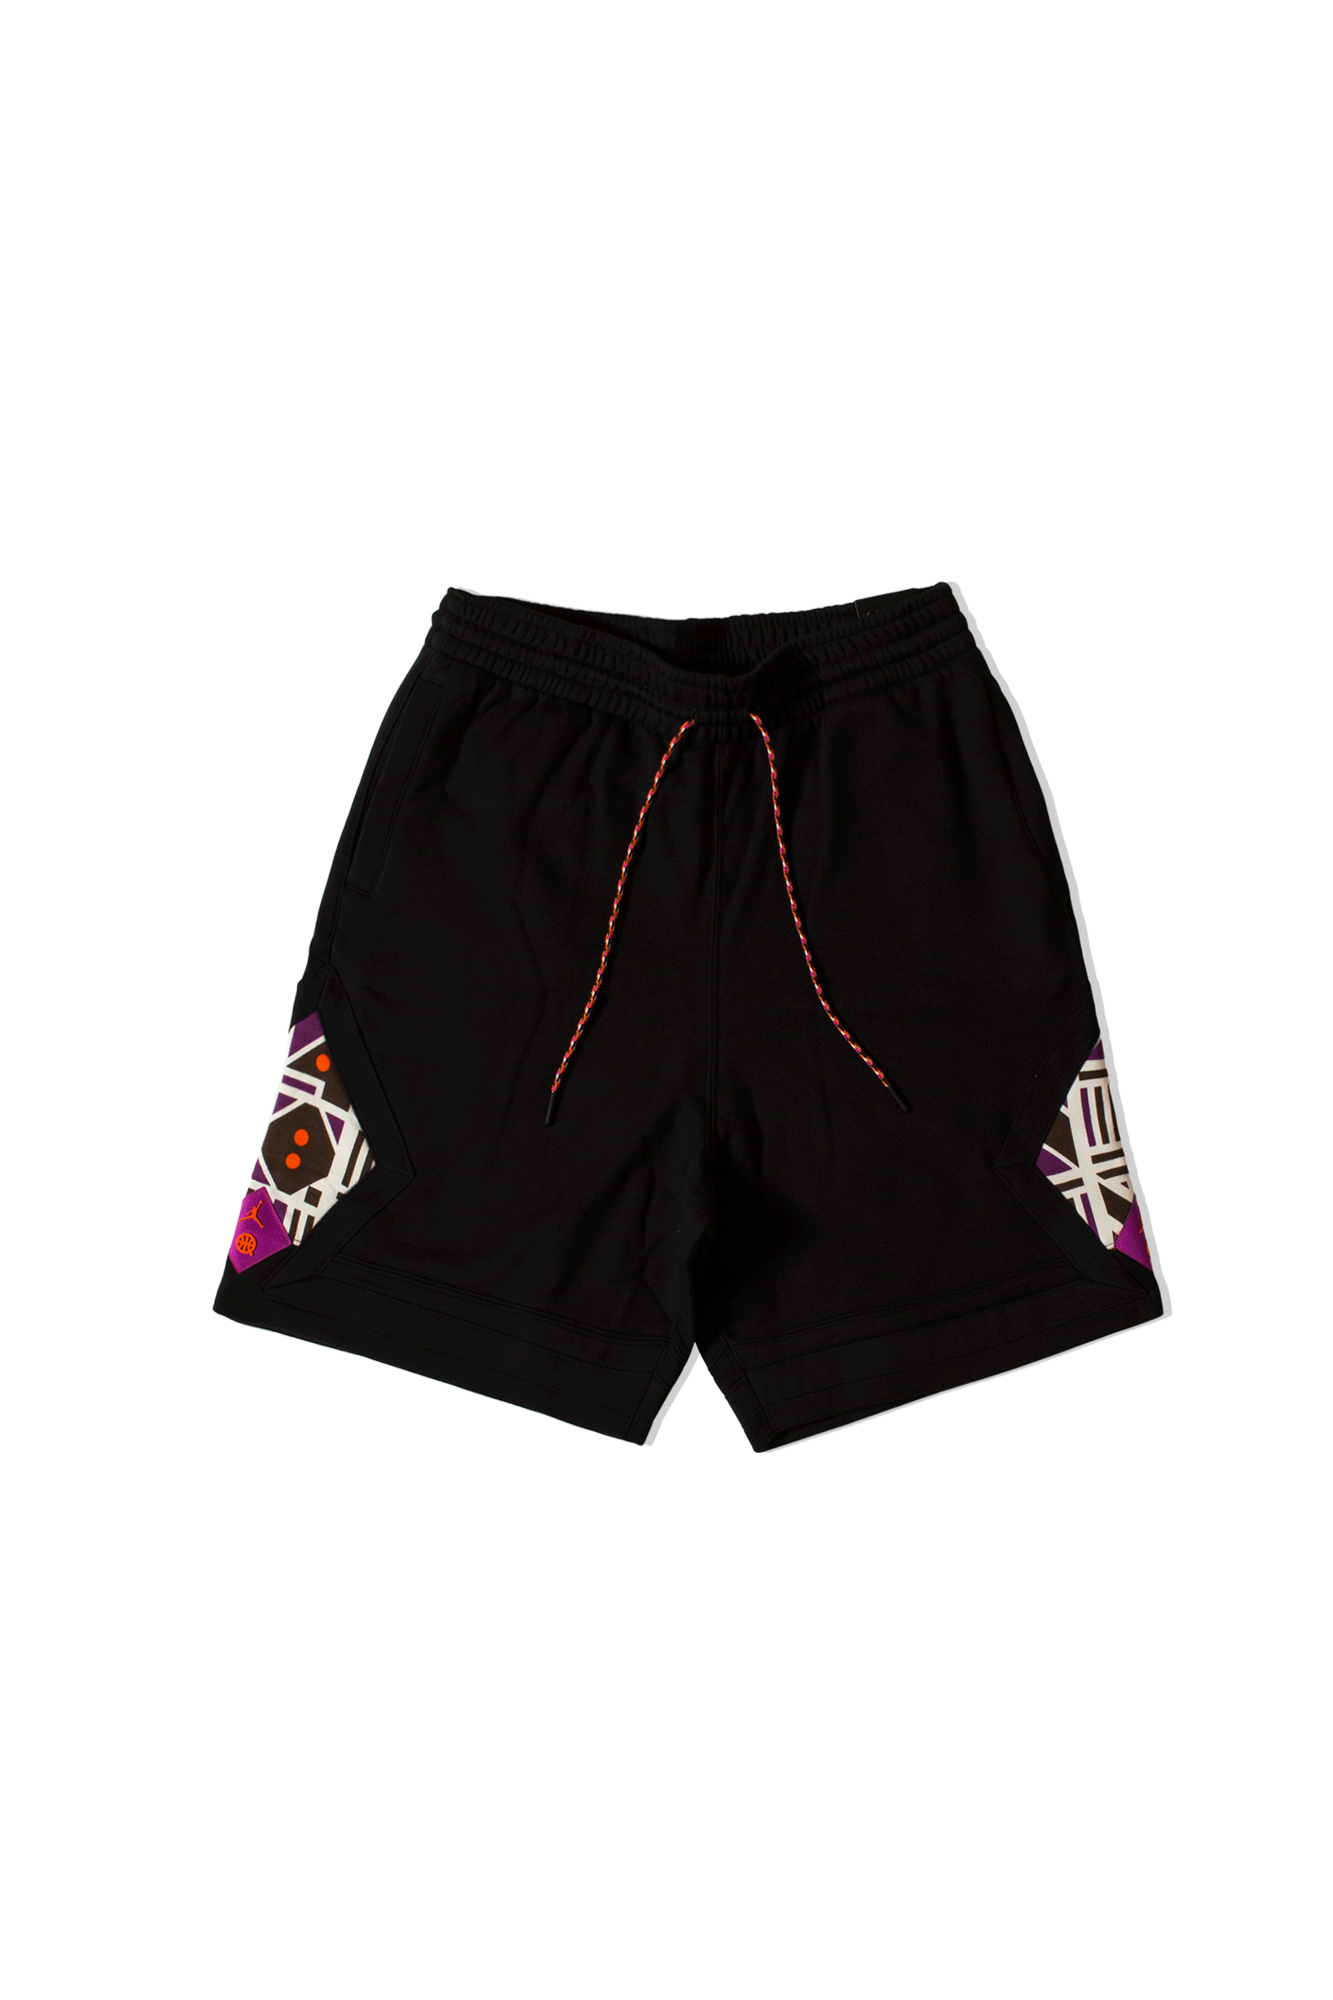 Quai 54 Jumpman Diamond Short Black